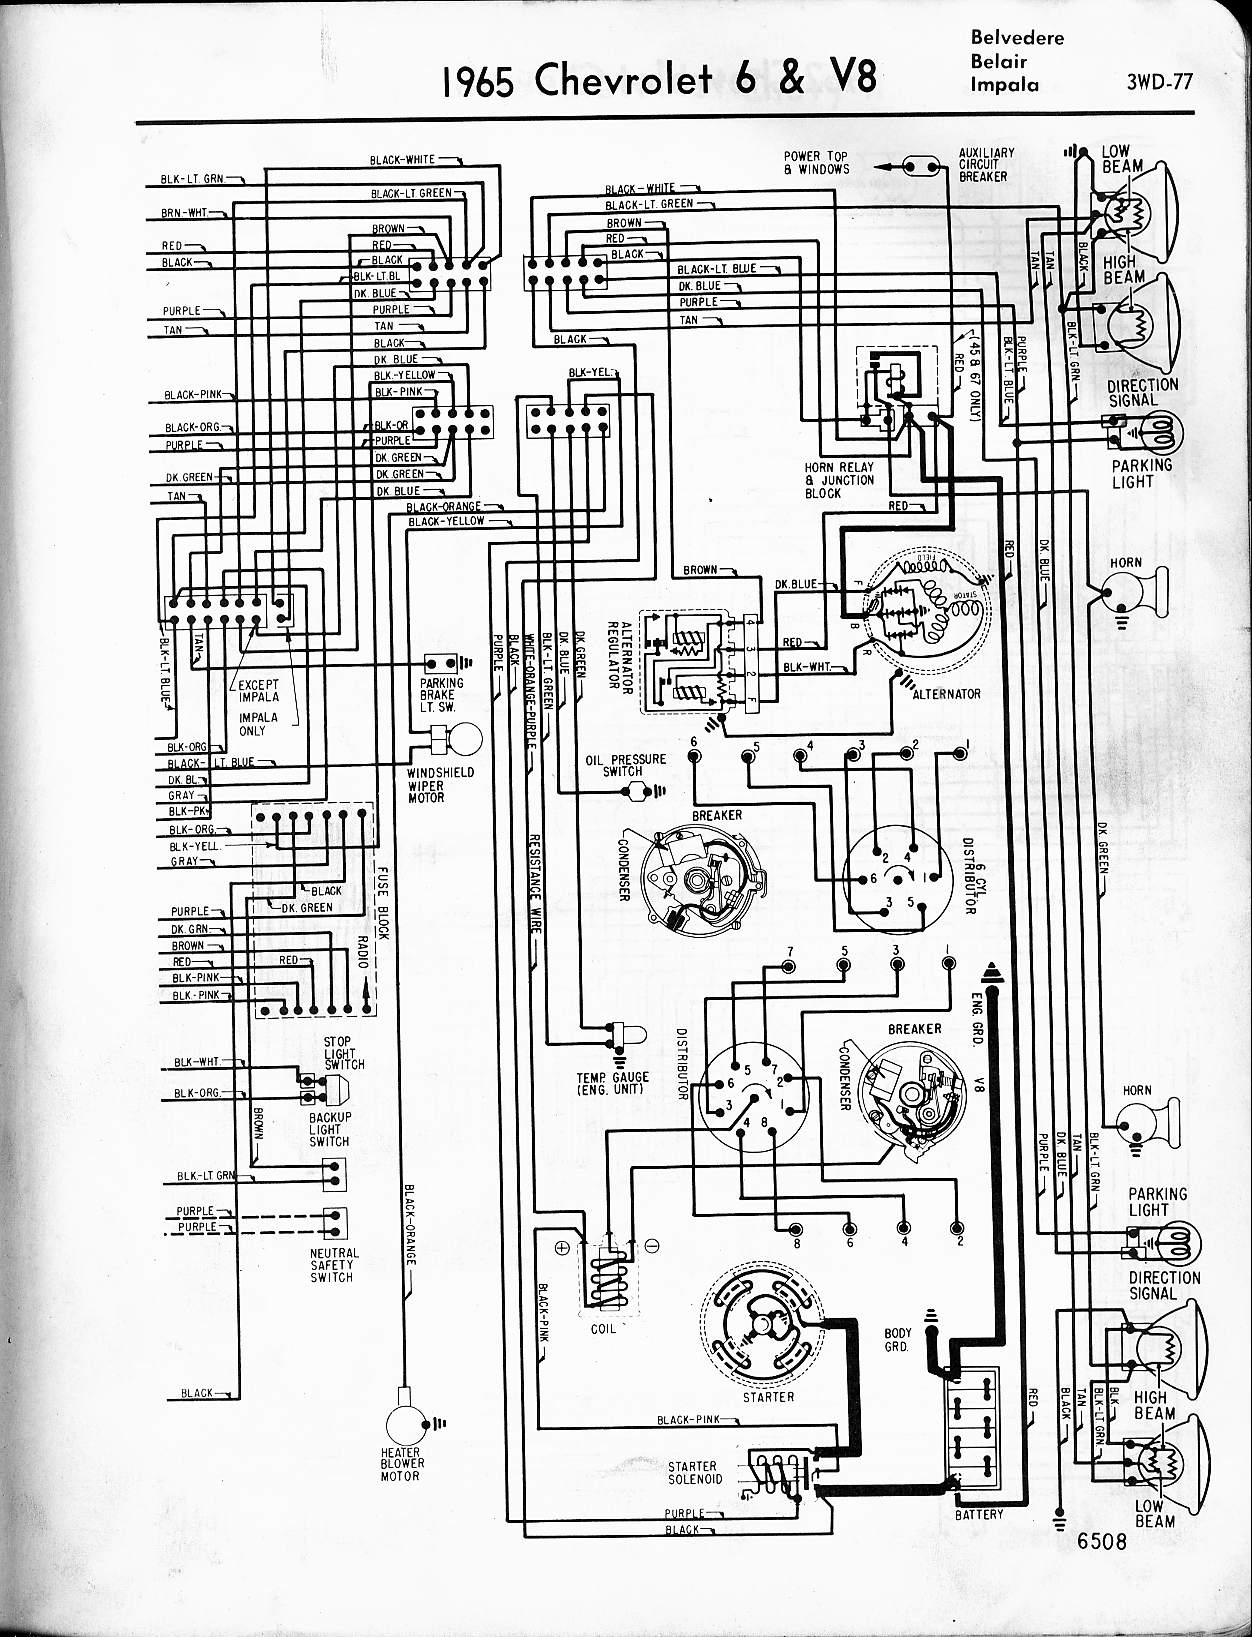 Fabulous 1967 Chevelle Wiring Diagram Basic Electronics Wiring Diagram Wiring 101 Photwellnesstrialsorg